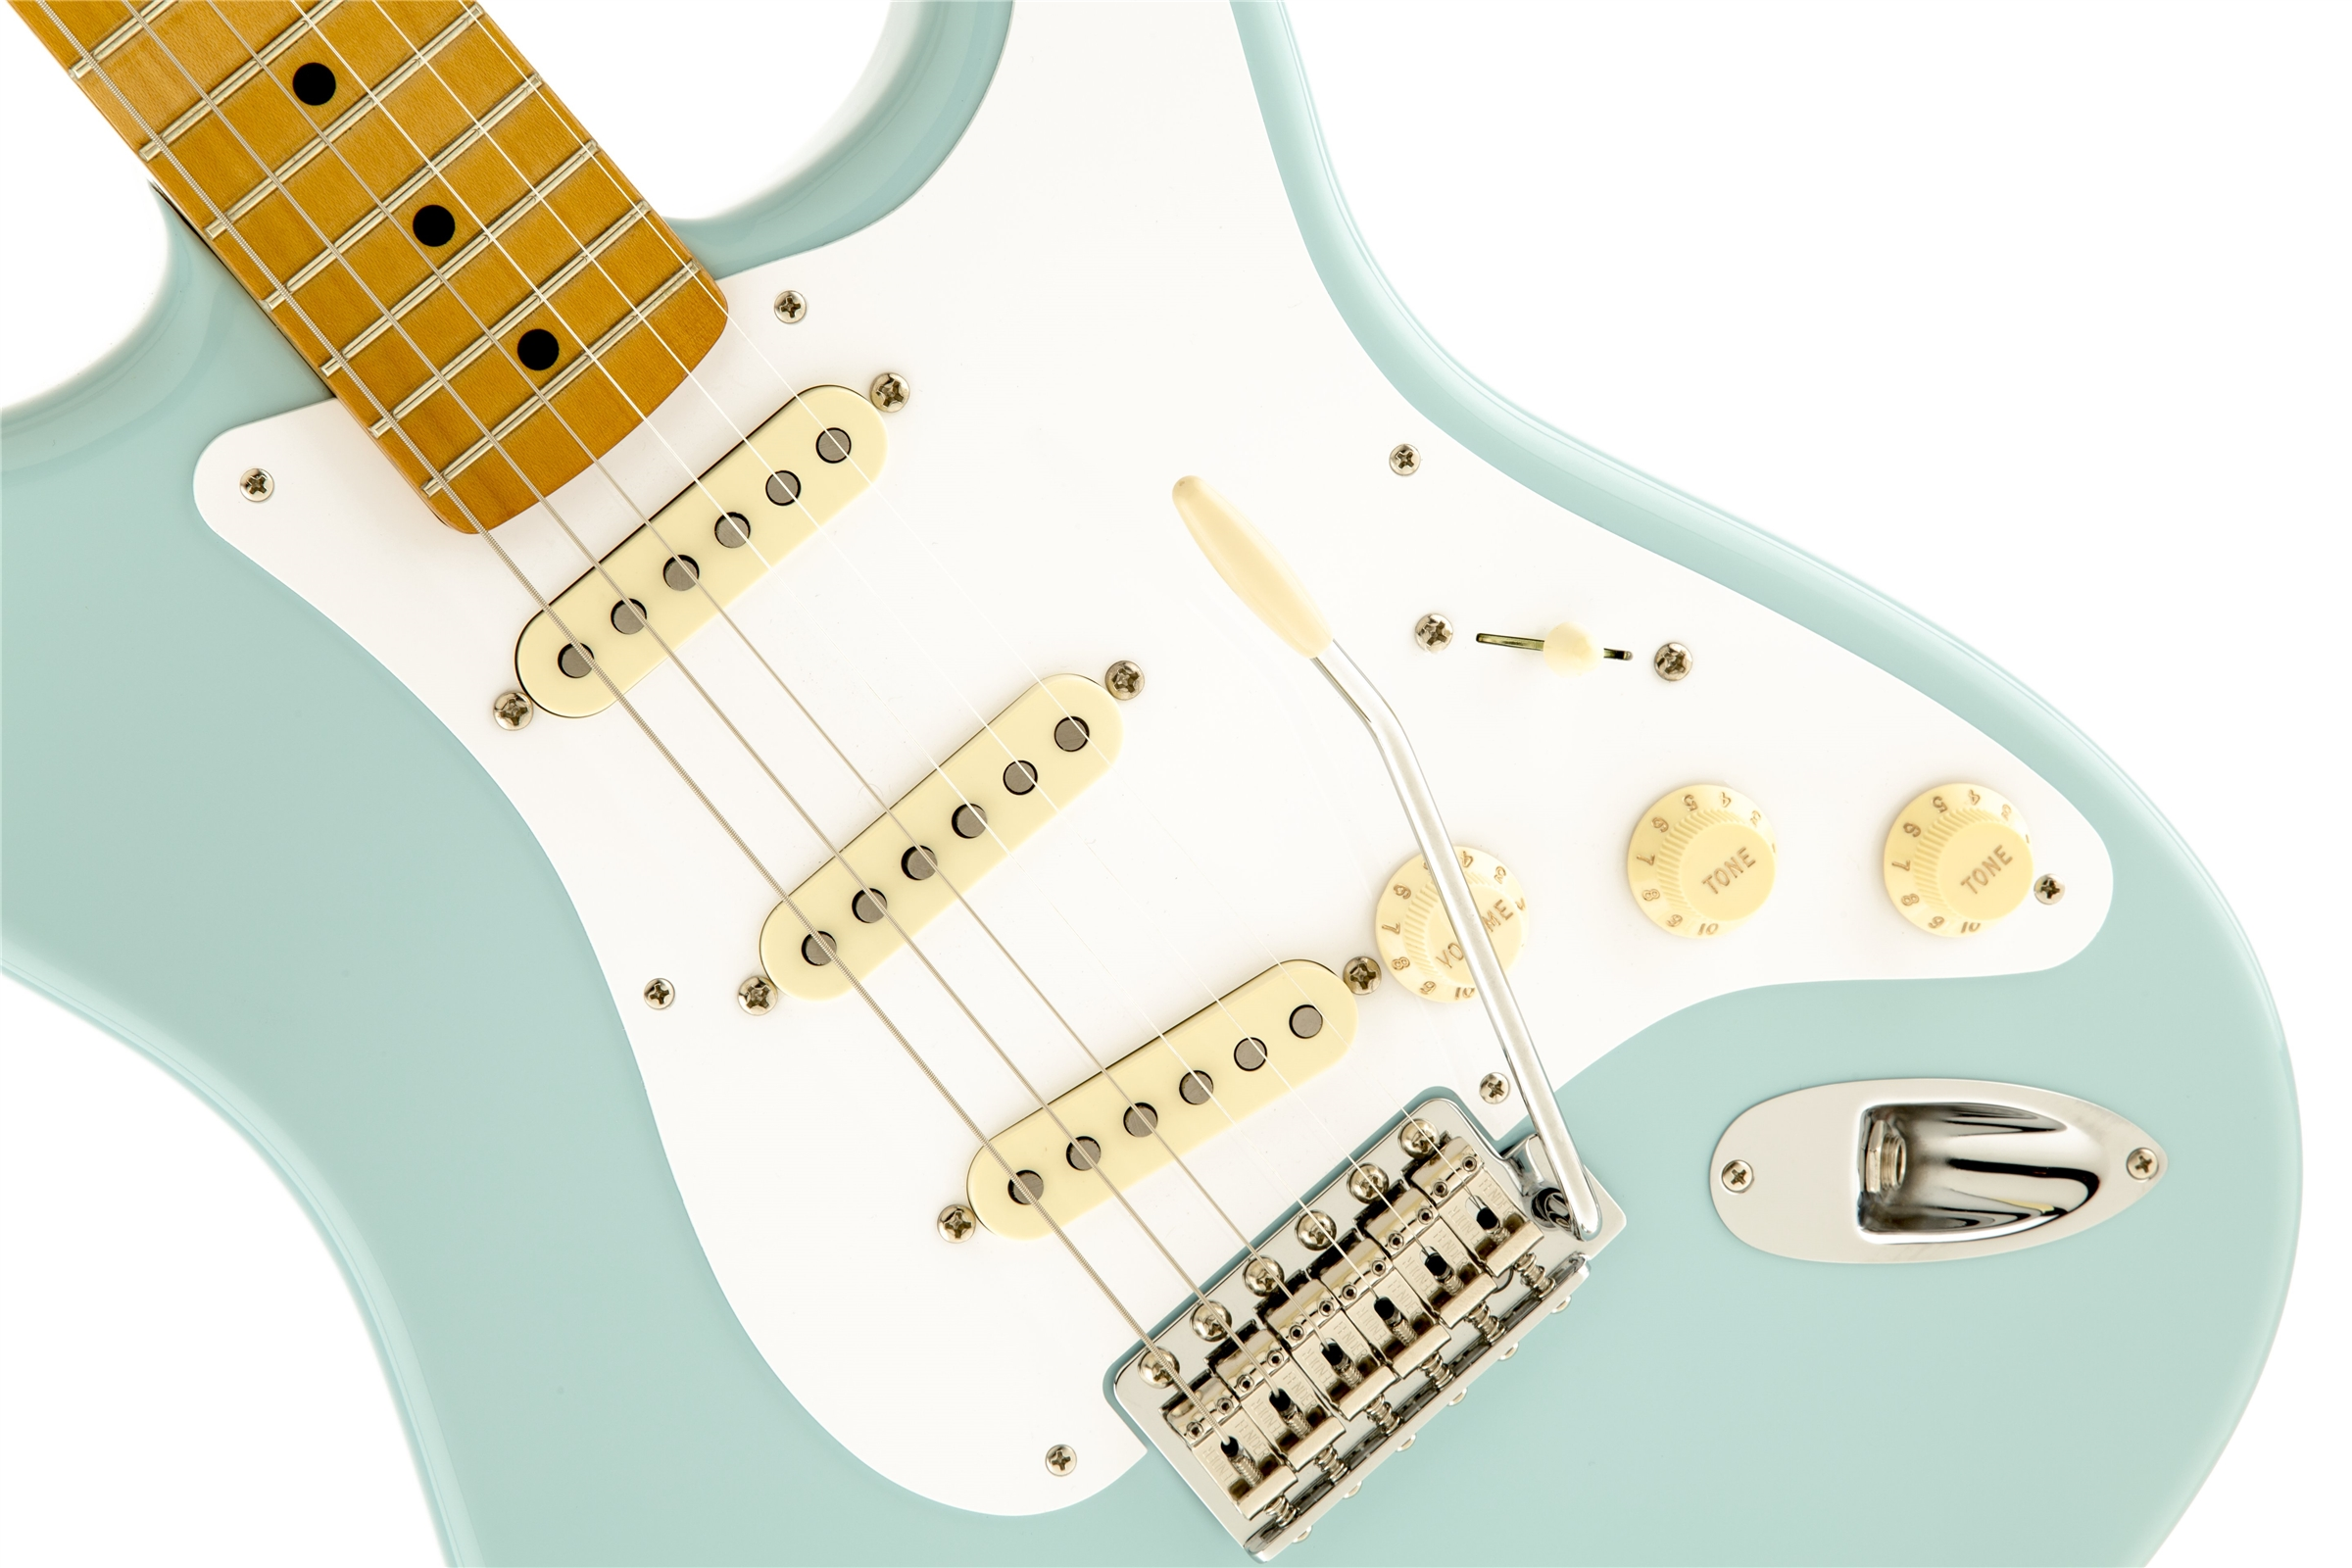 Fender Classic Series '50s Stratocaster® Daphne Blue Maple Fingerboard Electric Guitar